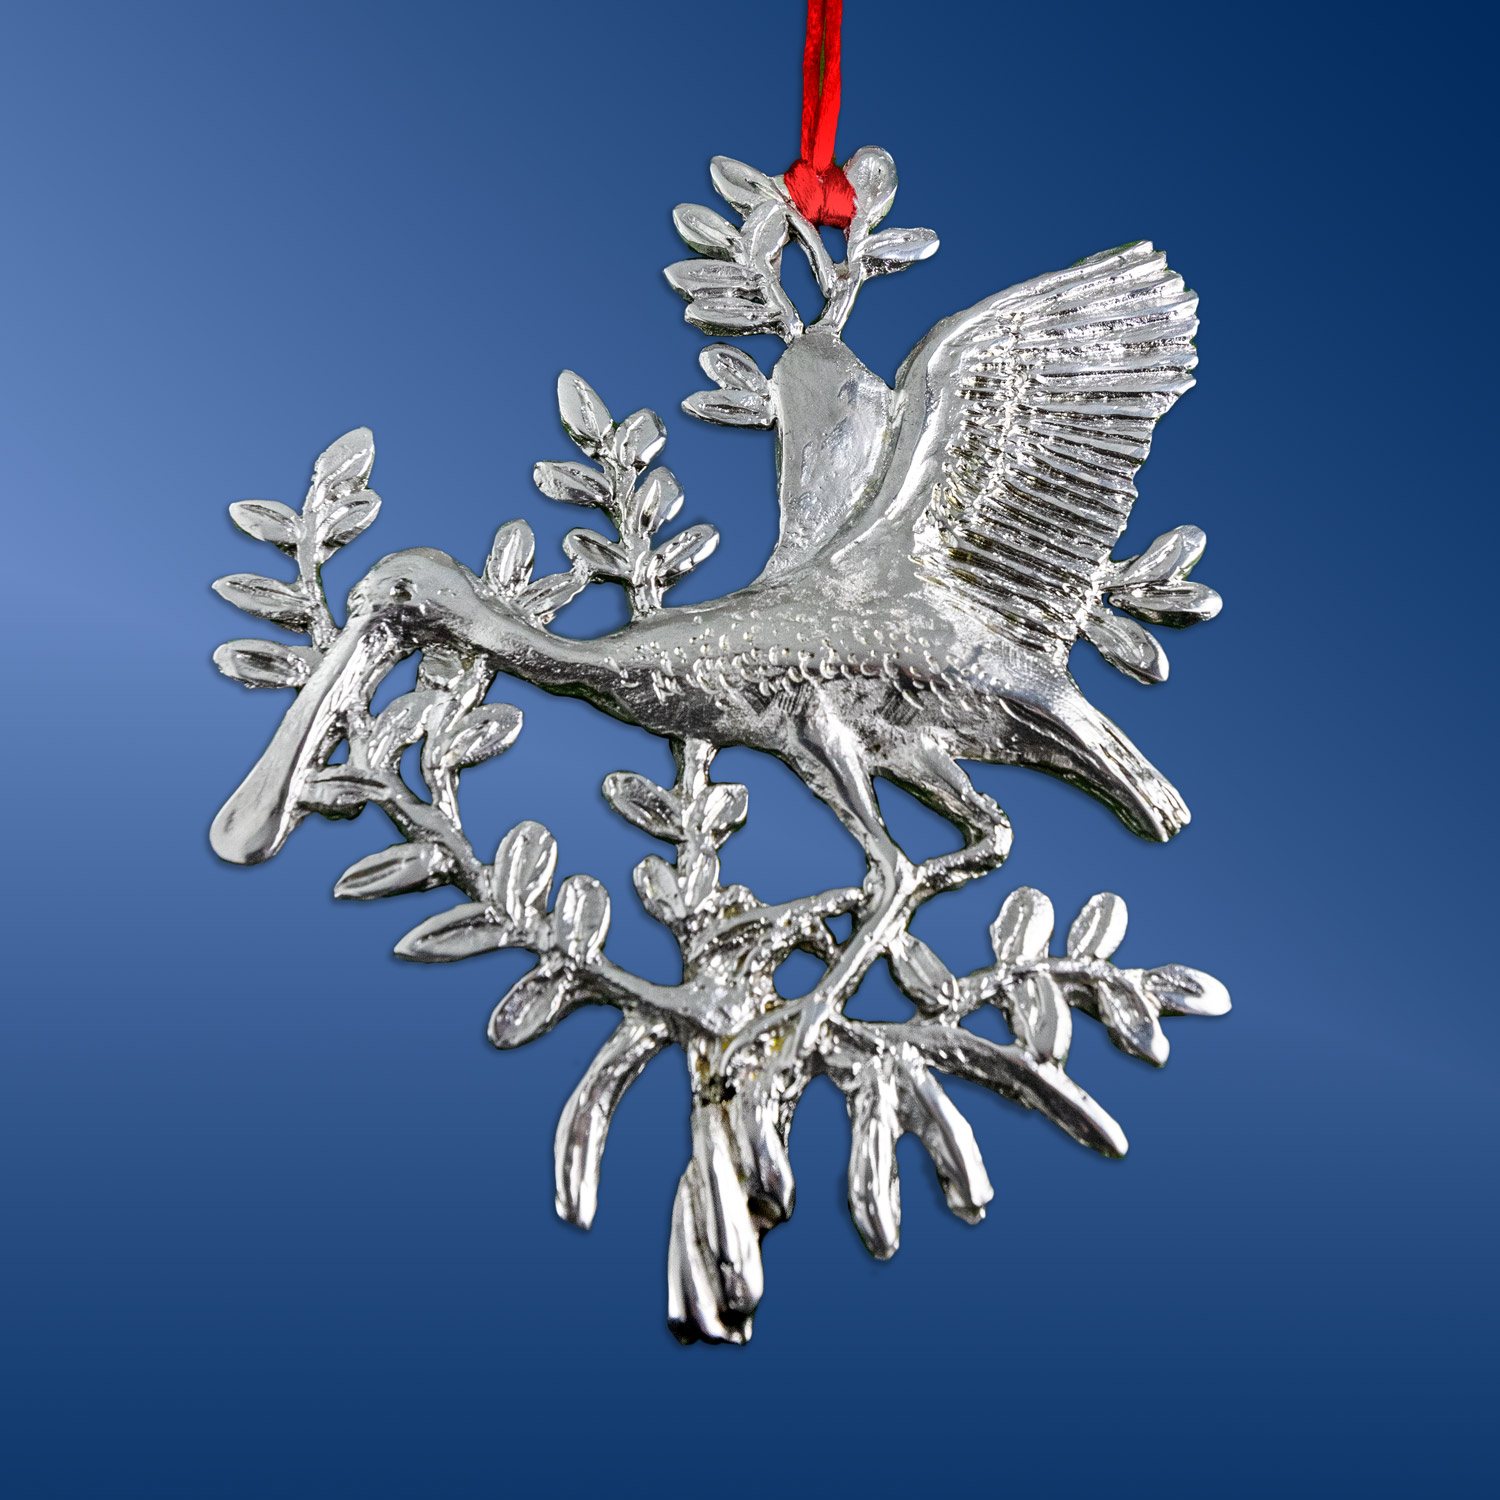 2020 Spoonbill Ornament